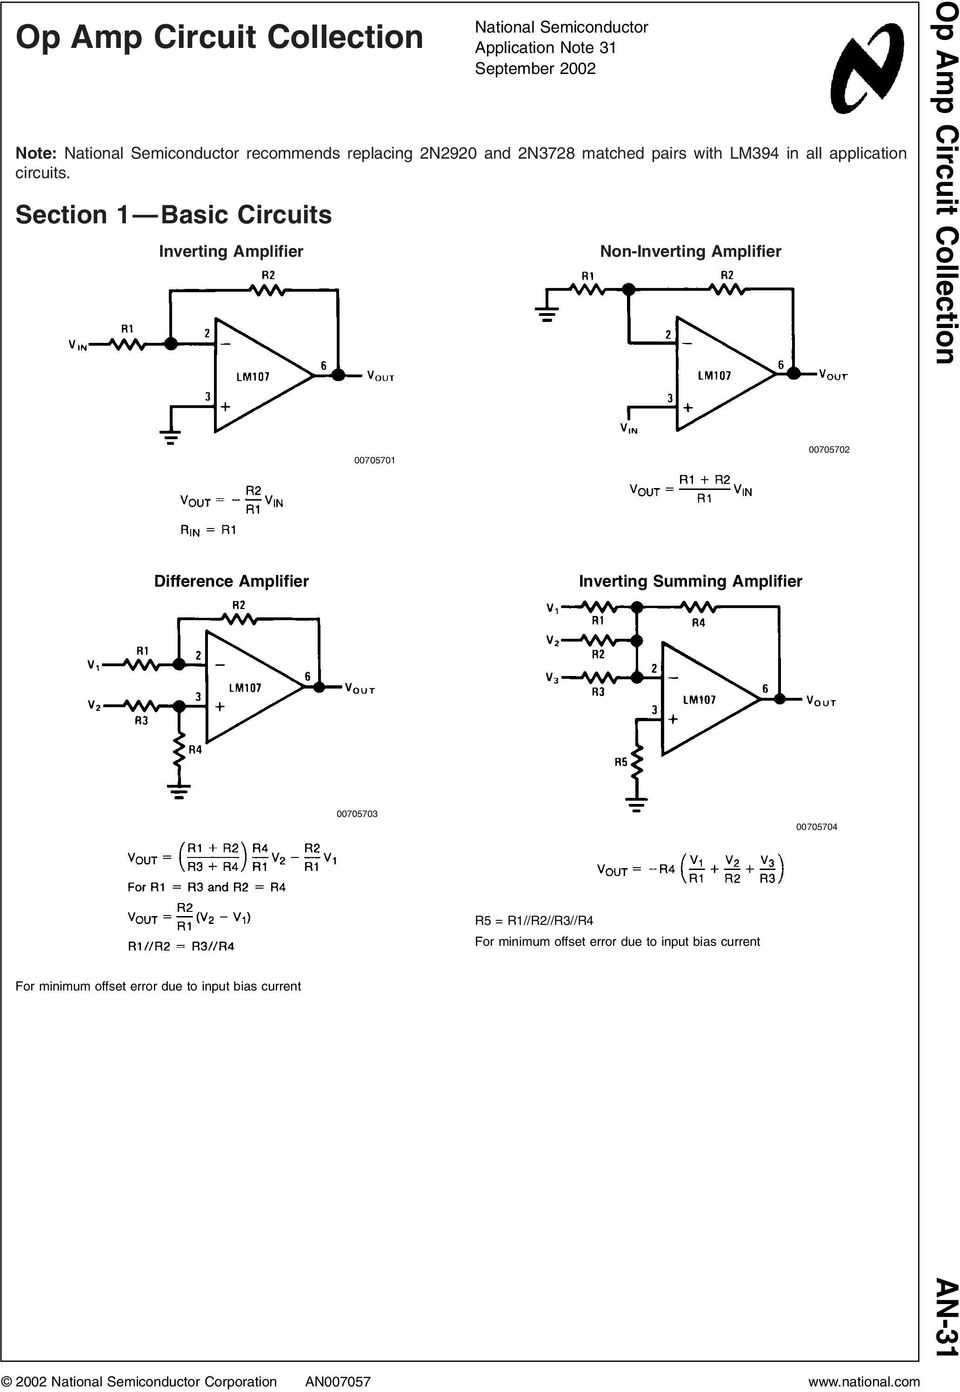 Op Amp Circuit Collection Pdf Basic Singlesupply Voltage Regulator Diagram Electronic Section 1 Circuits Inverting Amplifier Difference For Minimum Offset Error Due To Input Bias